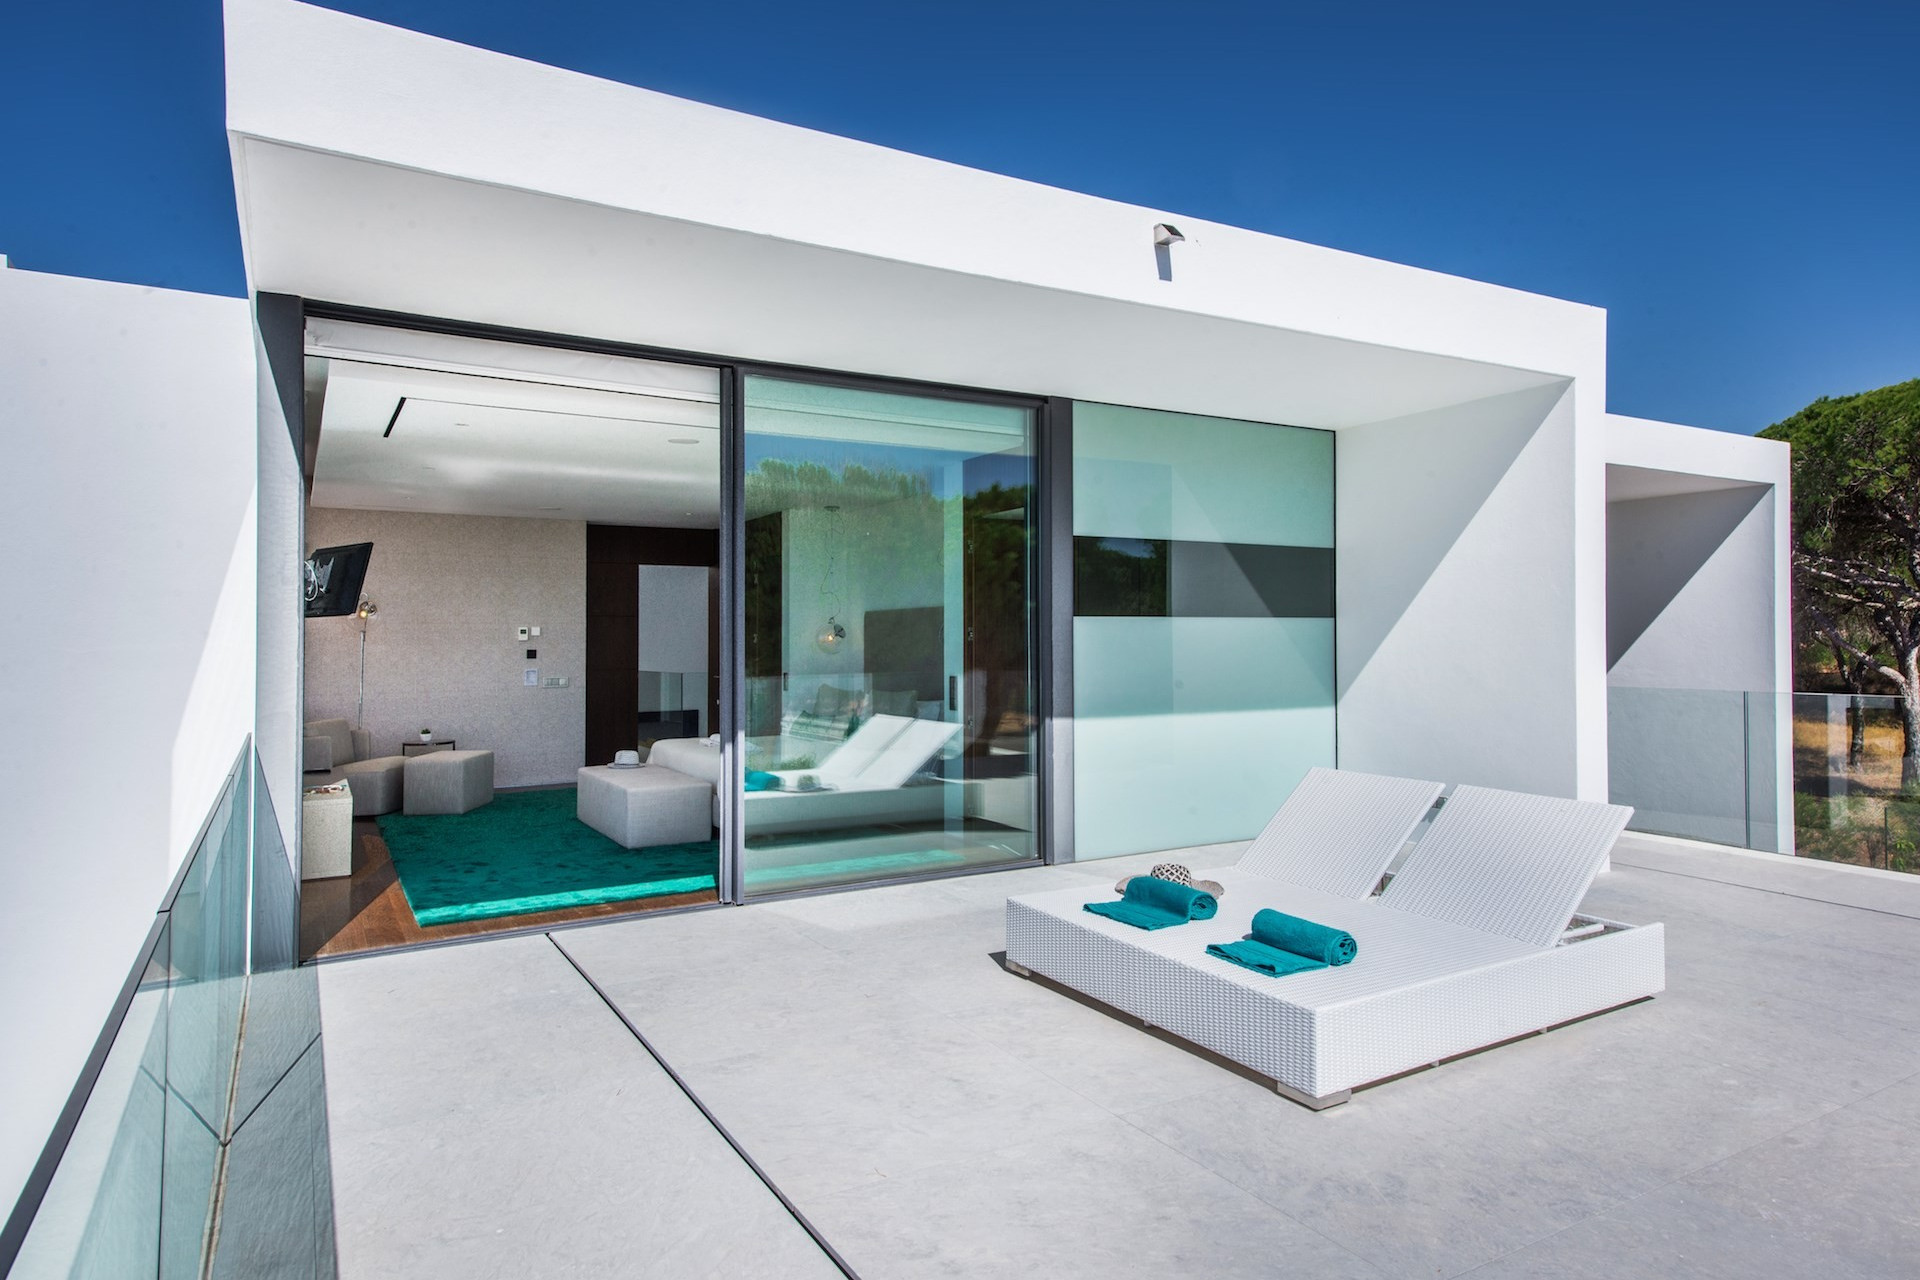 luxury villas in portugal near beach